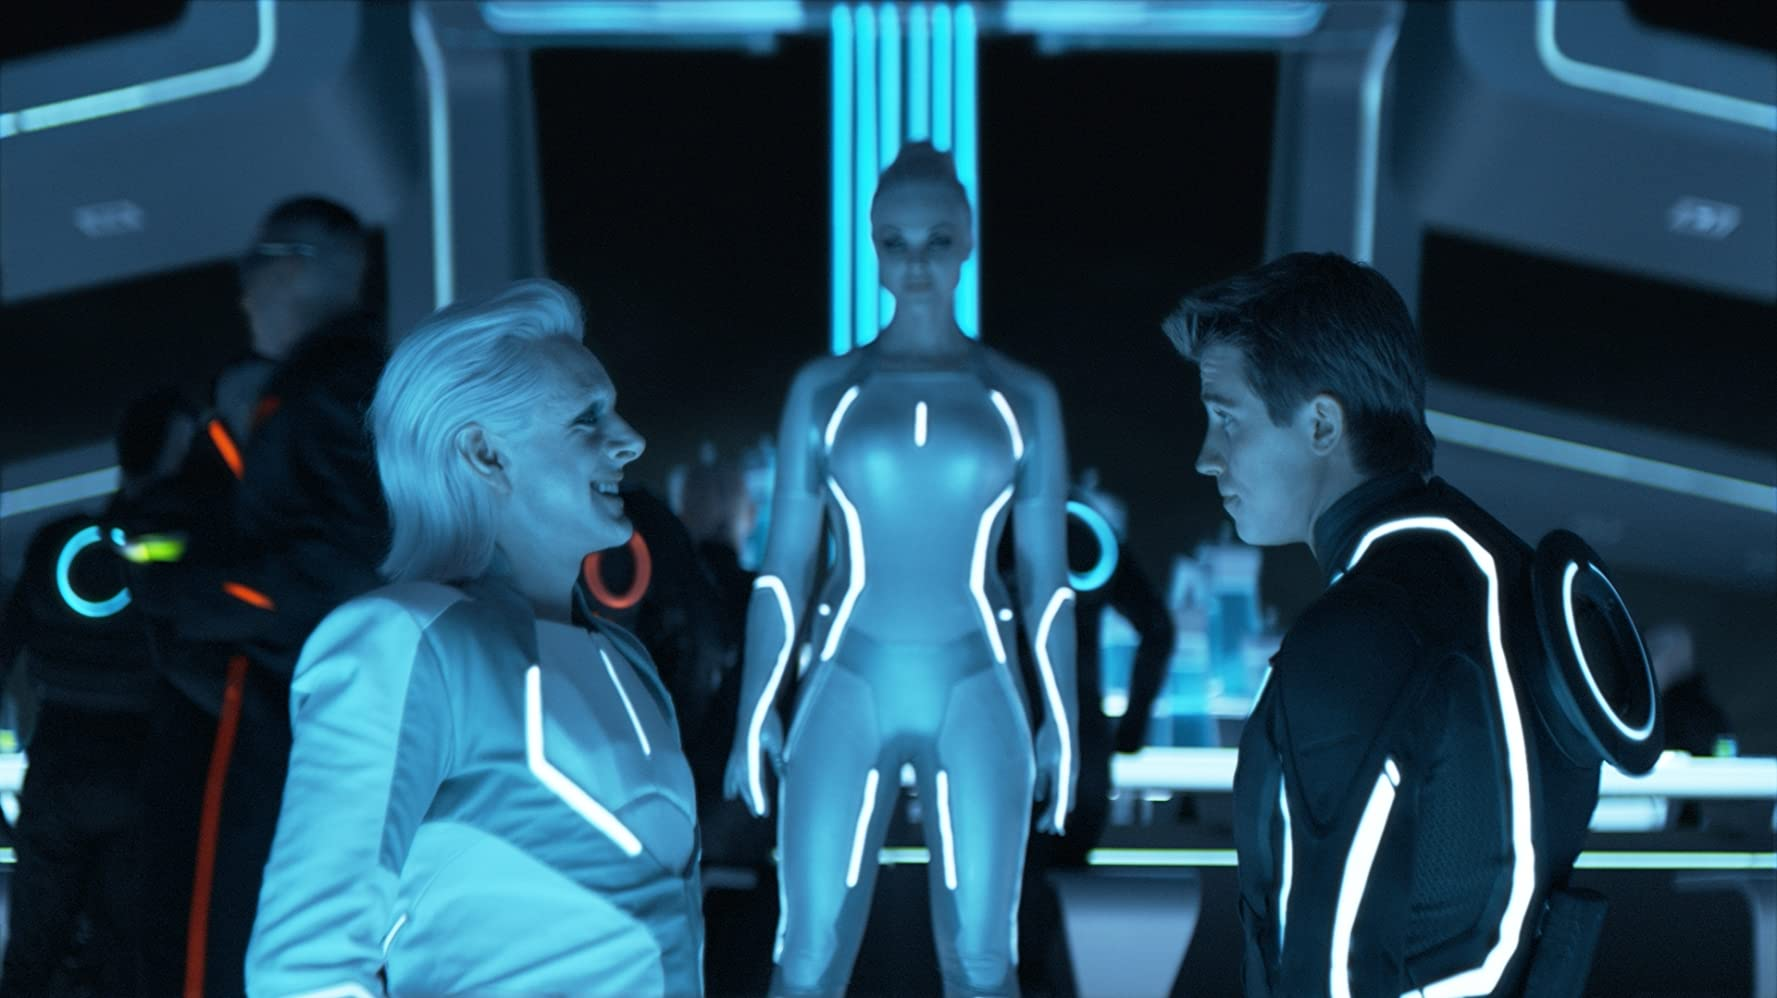 Michael Sheen, Garrett Hedlund, and Beau Garrett in Tron (2010)